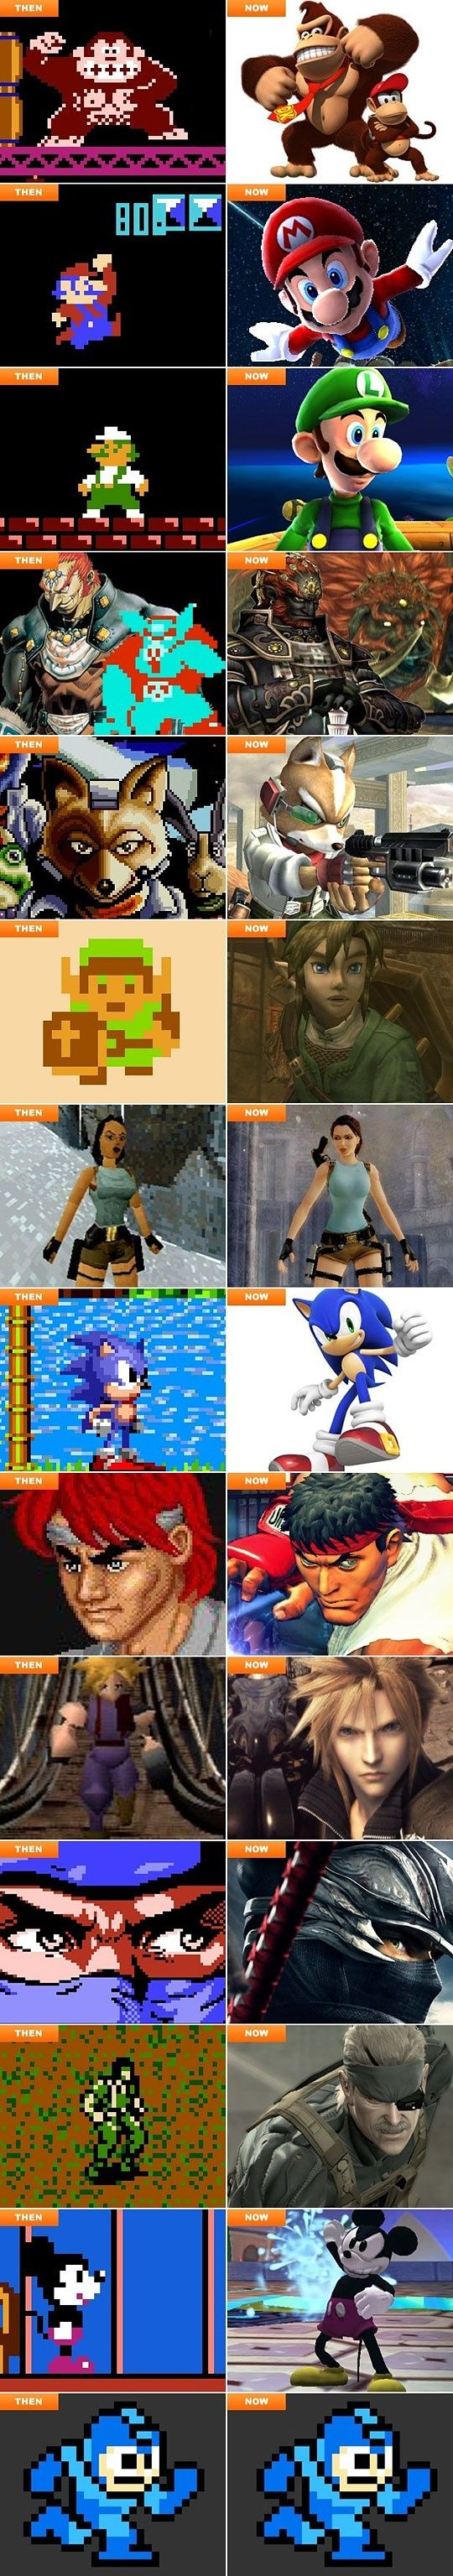 Amazing how gaming evolved so much. I like Megaman, so regardless of graphics and gameplay. They're all still good games and unique to play, no matter how cut down today's gaming standards.